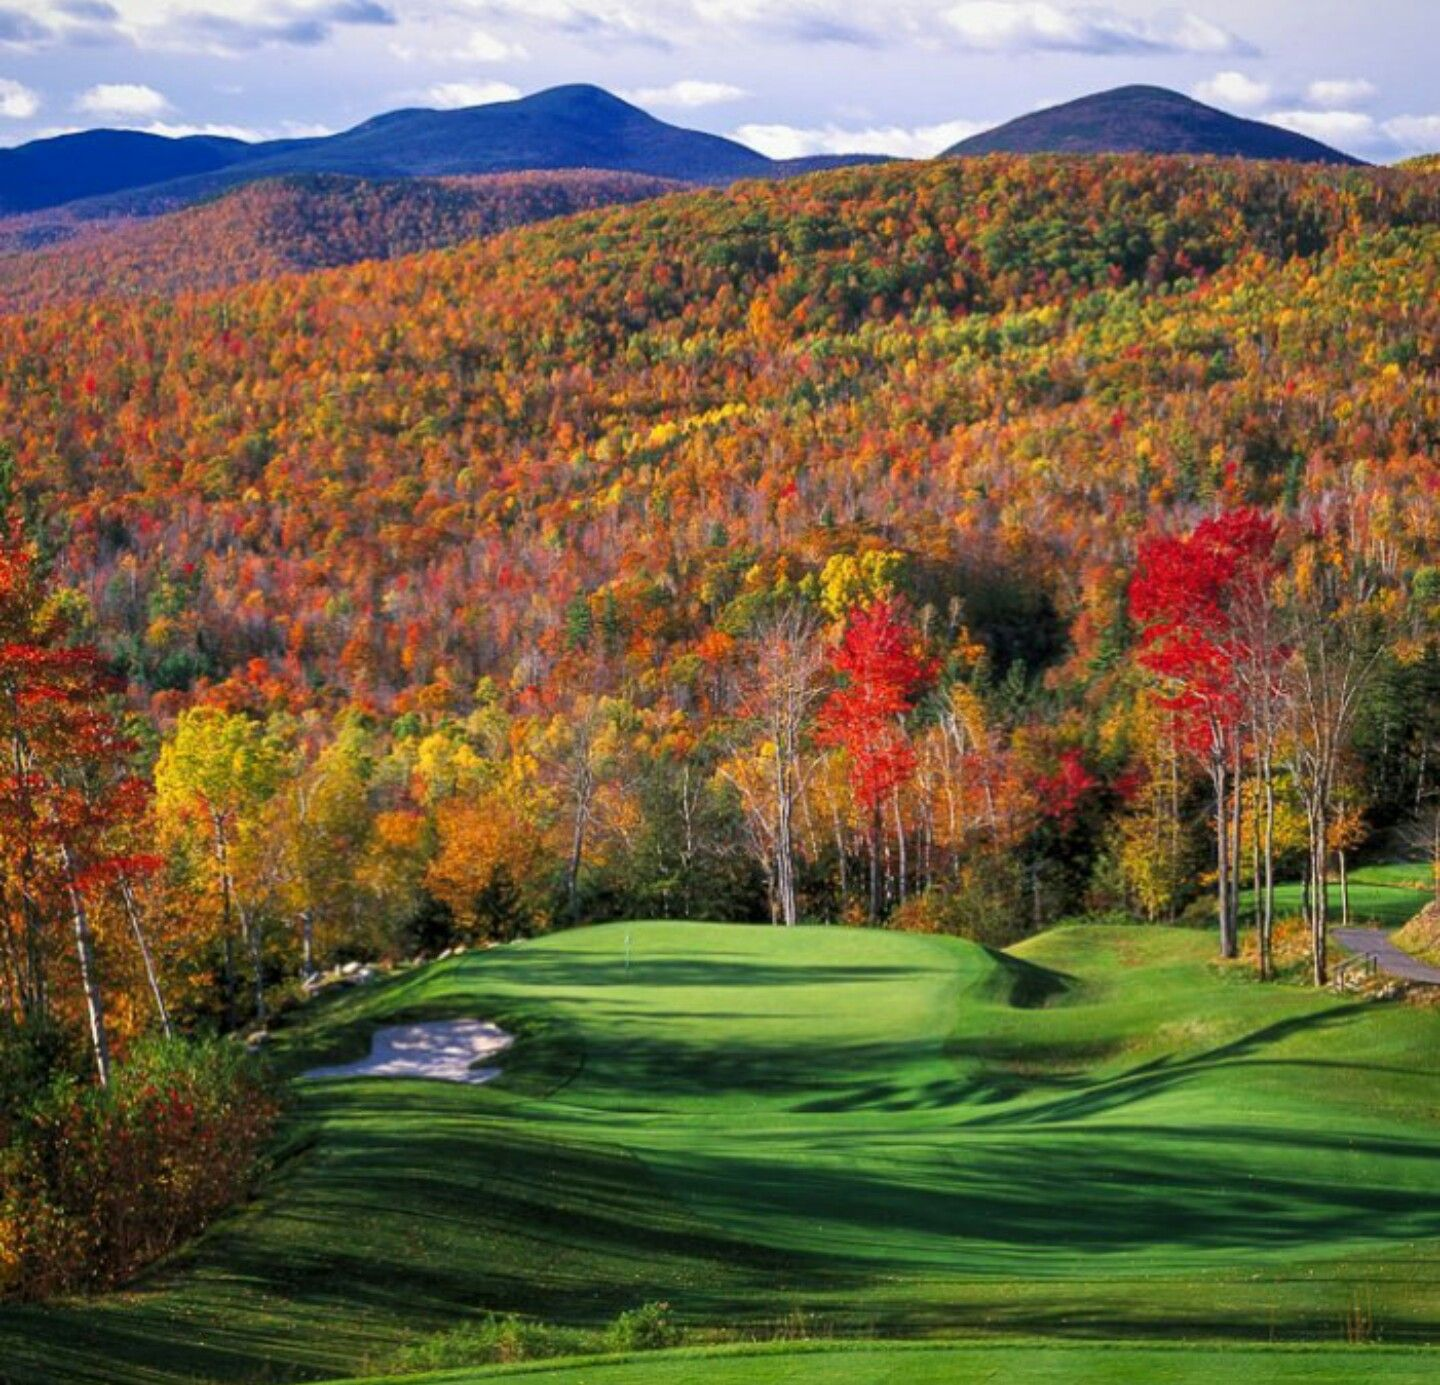 We love summer, but don't mind the fall too much #fallgolf #leafpeepers #fore20 #puffingtons #wakenbake #golf #fall #cannabis #dank #pga #rydercup #caddyshack #caddy #cartgirl #bogey #teetime